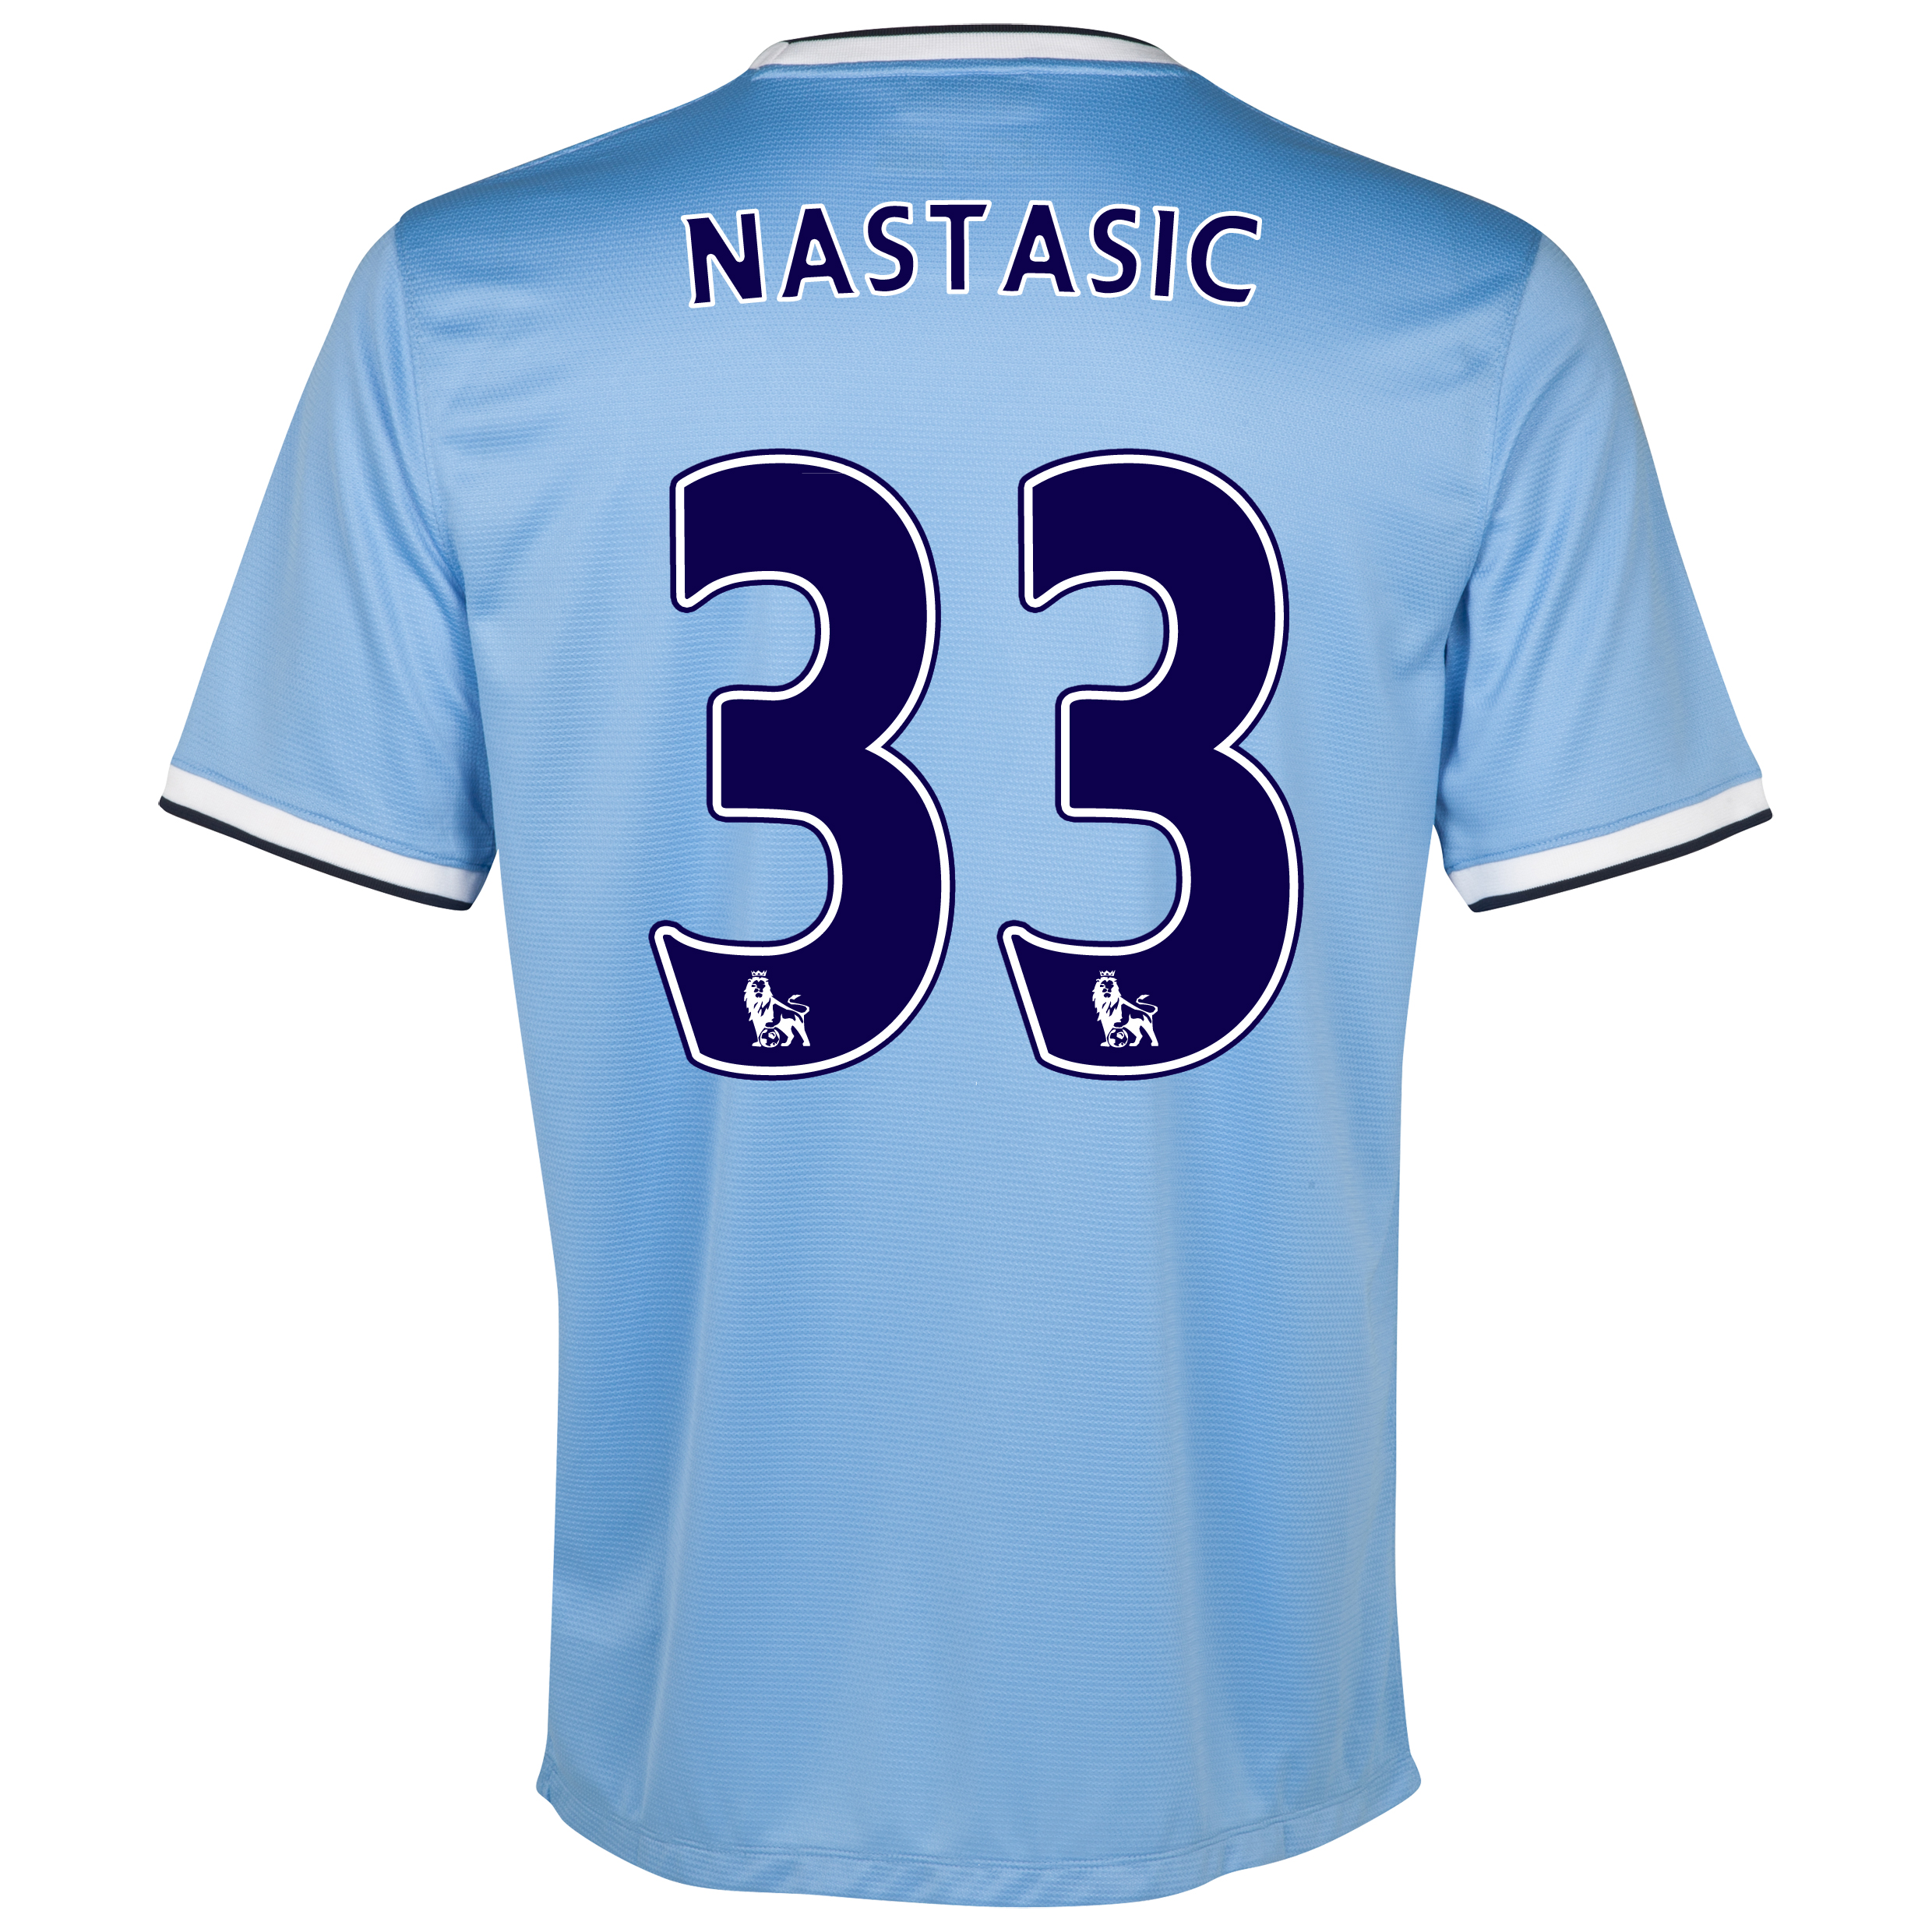 Nastasic 33 hero shirts